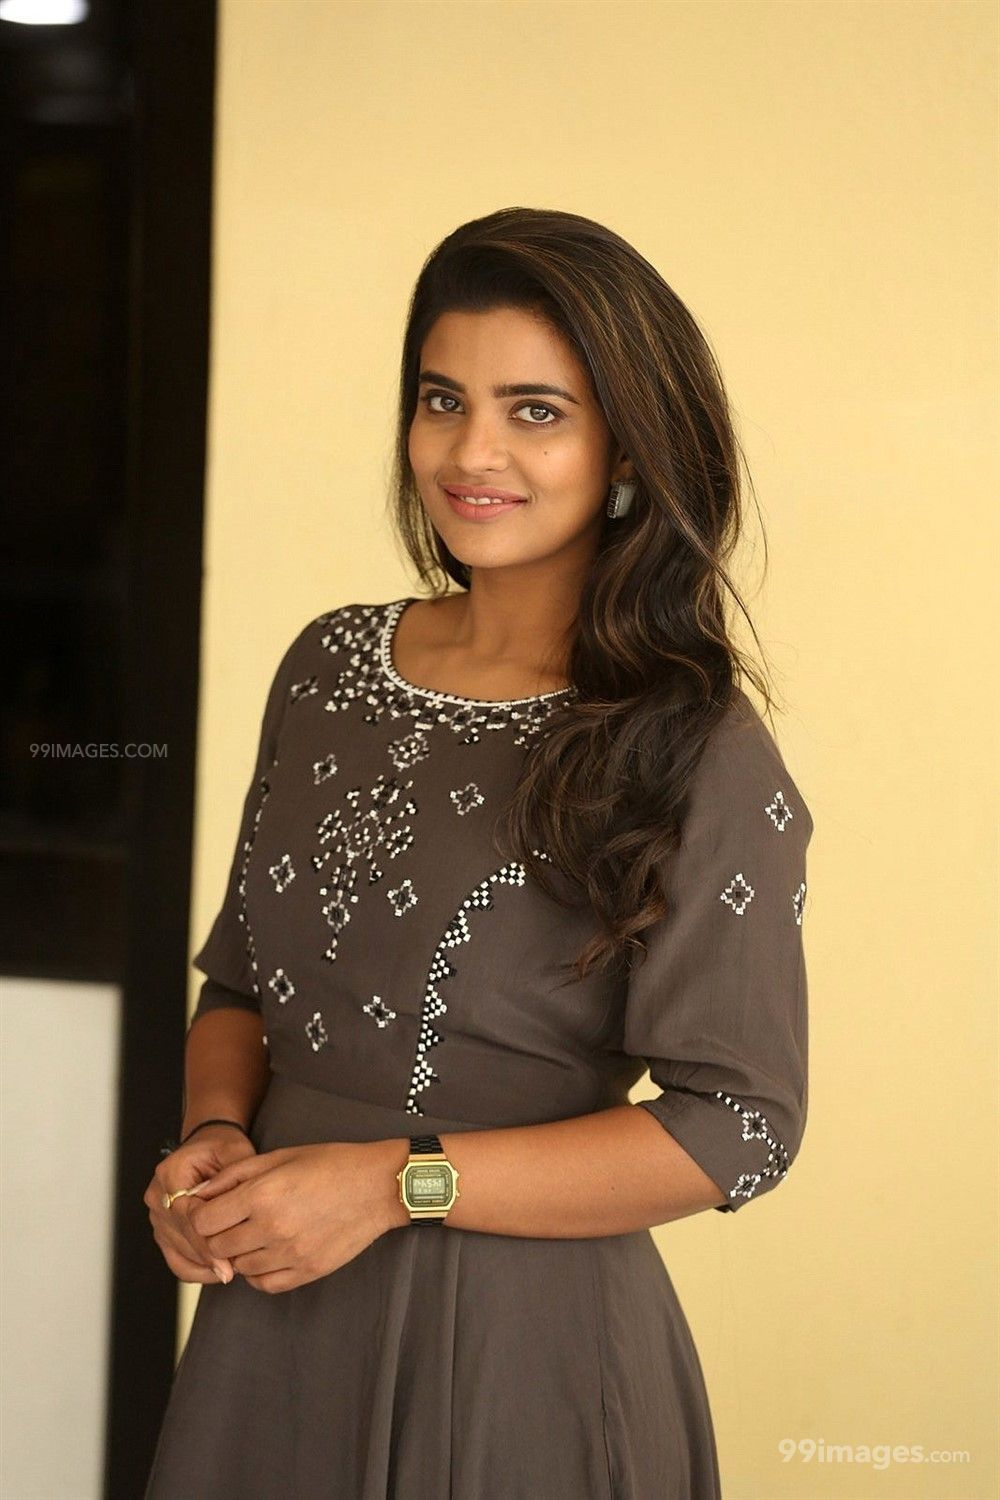 Aishwarya Rajesh HD Wallpapers (Desktop Background / Android / iPhone) (1080p, 4k) (73941) - Aishwarya Rajesh